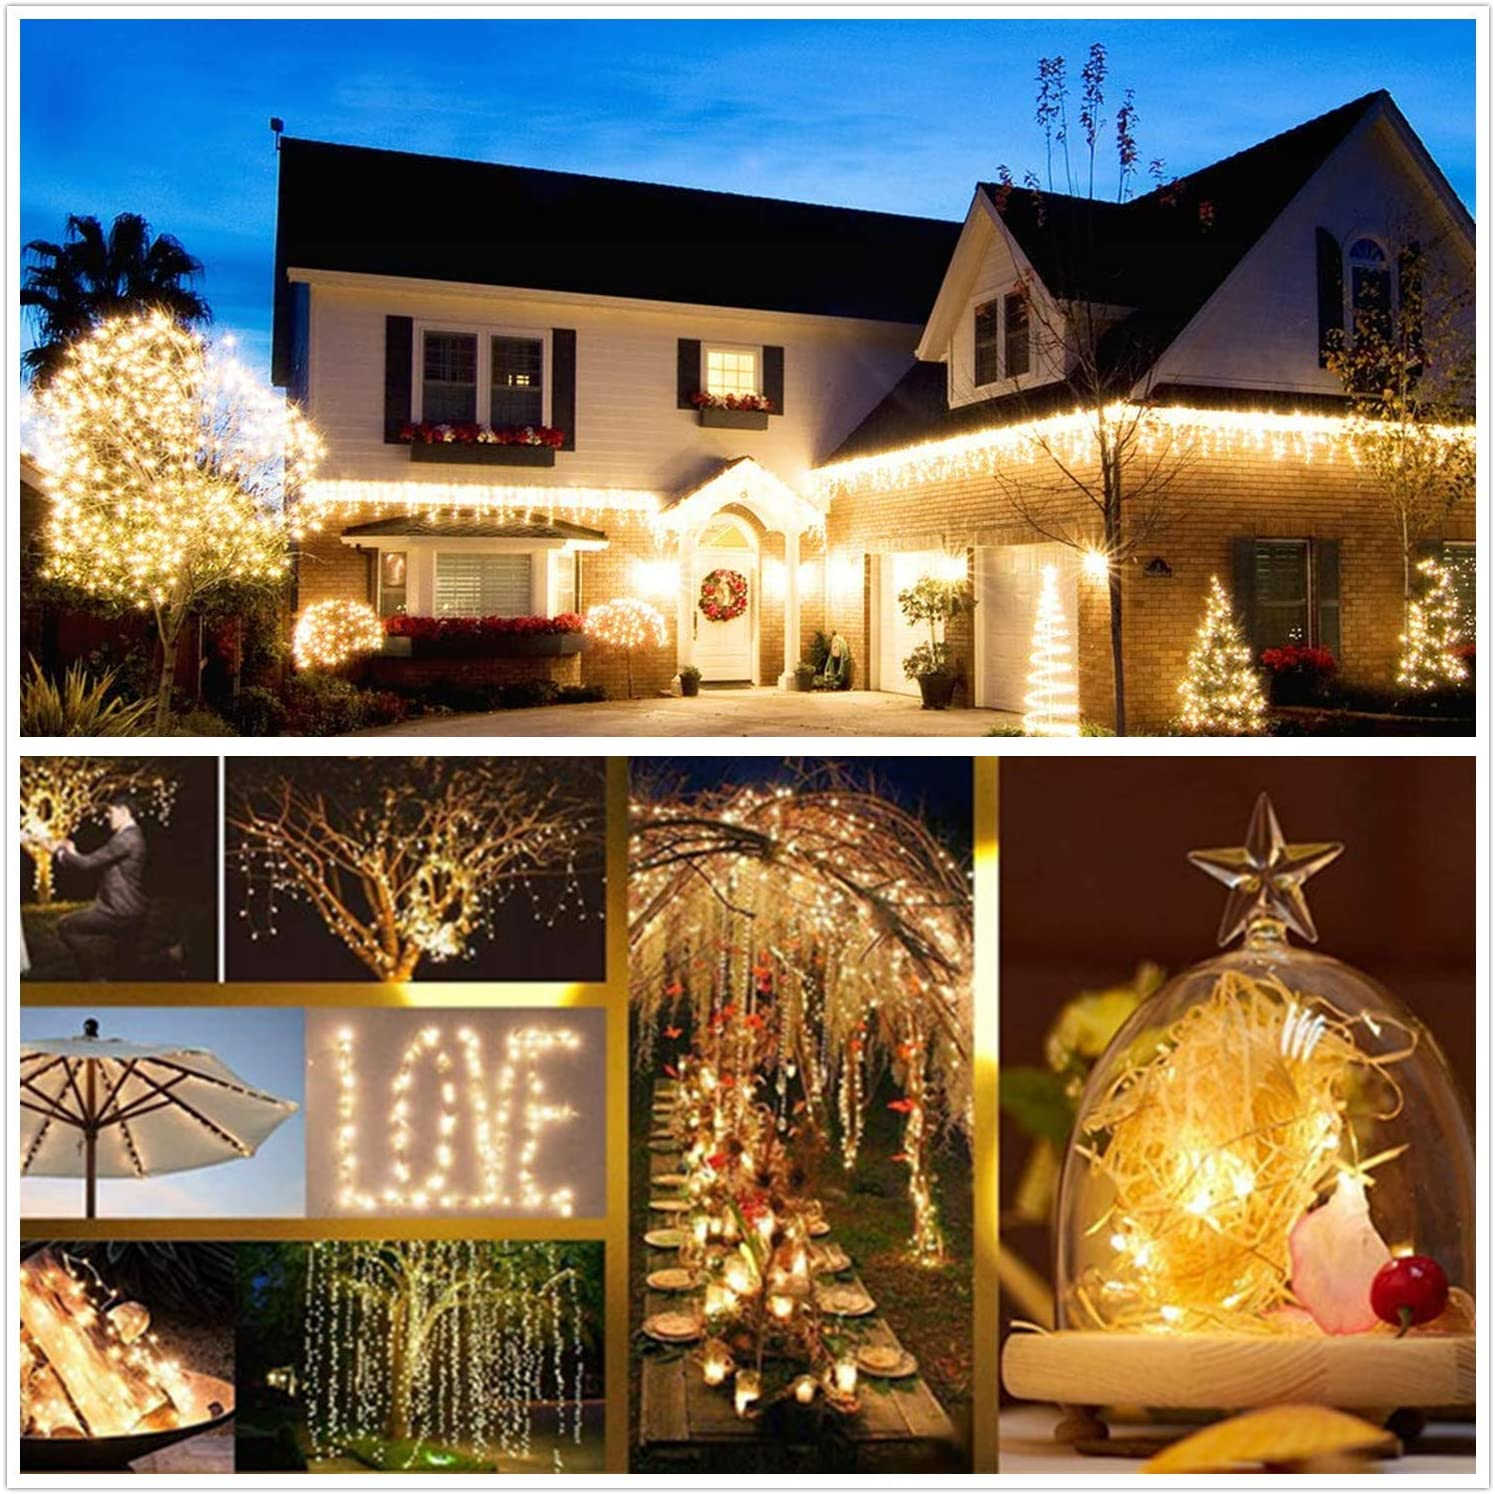 H930e04eac06e4636a7e489db91165f92N - 50/100/200/330 LED Solar Light Outdoor Lamp String Lights For Holiday Christmas Party Waterproof Fairy Lights Garden Garland